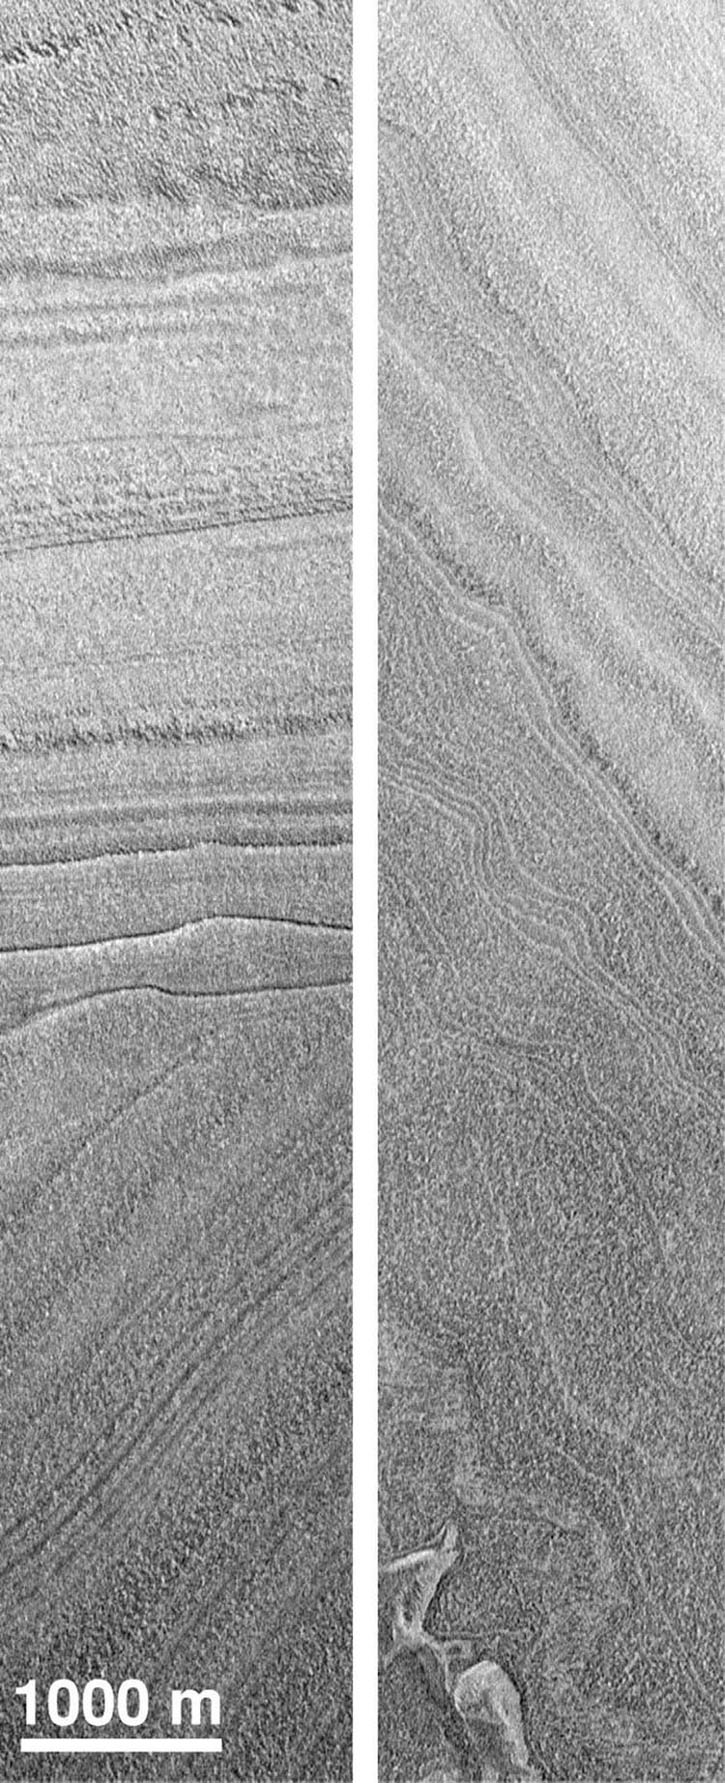 NASA's Mars Global Surveyor shows martian polar layered deposits taken in July 1998 exhibiting features common to sedimentary rocks on Earth. At left, an angular unconformity, with horizontal layers overlying tilted beds; at right: deformed layers.